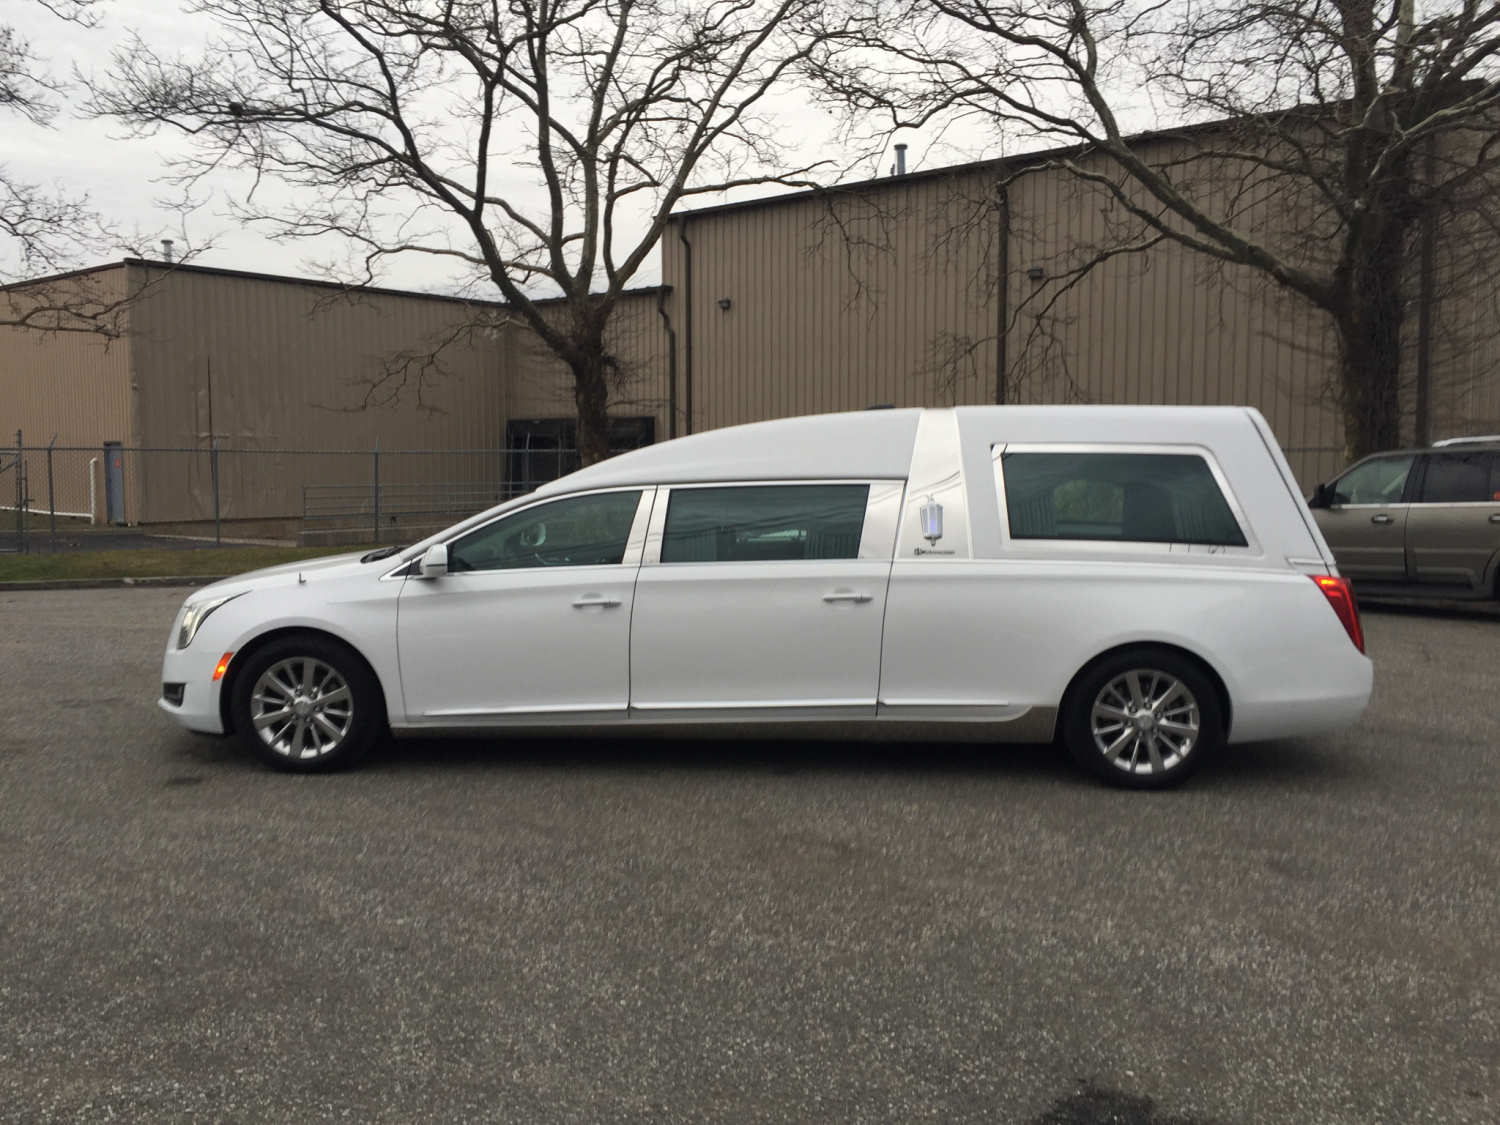 Boston Transportation Services to Hotels. qq9y3xuhbd722.gq provides airport transportation services, including airport shuttles, car service, and limo service to the following hotels.